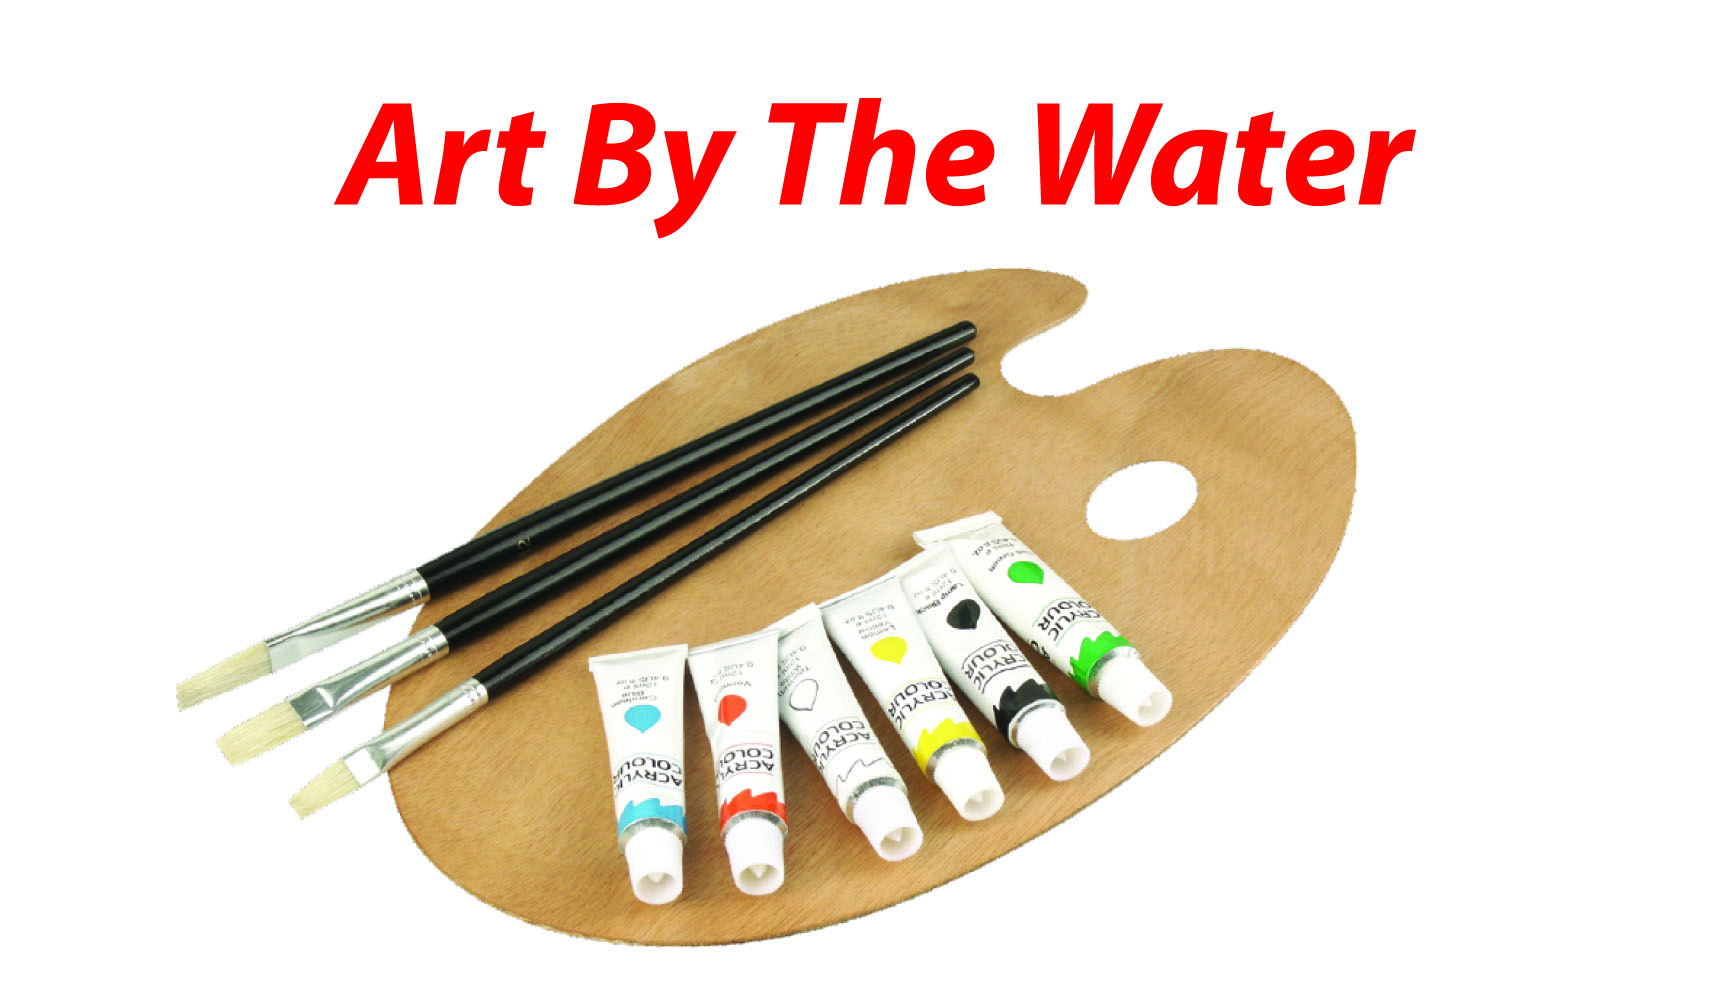 10TH ANNUAL ART BY THE WATER EXHIBIT & SALE